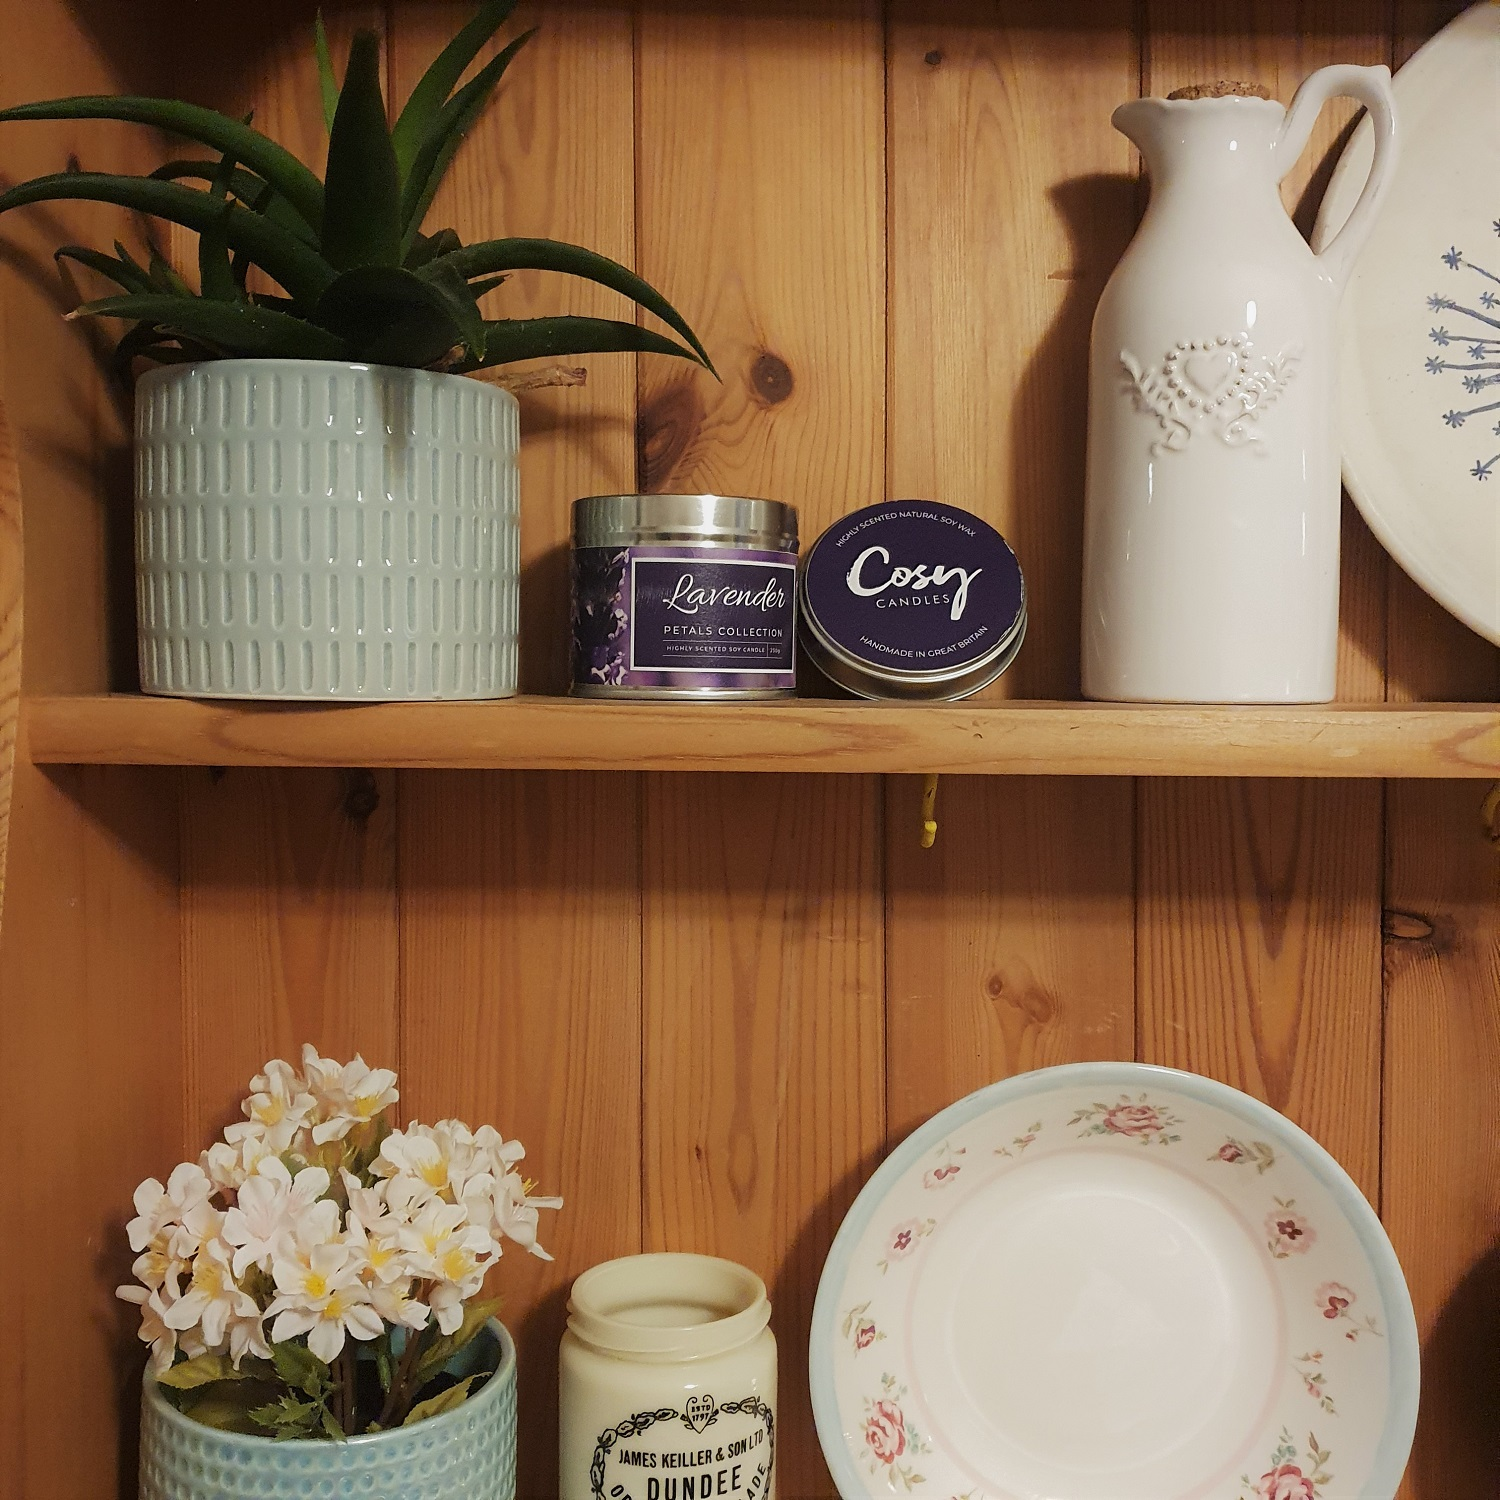 A shelf with assorted home decor and a Cosy Aromas candle